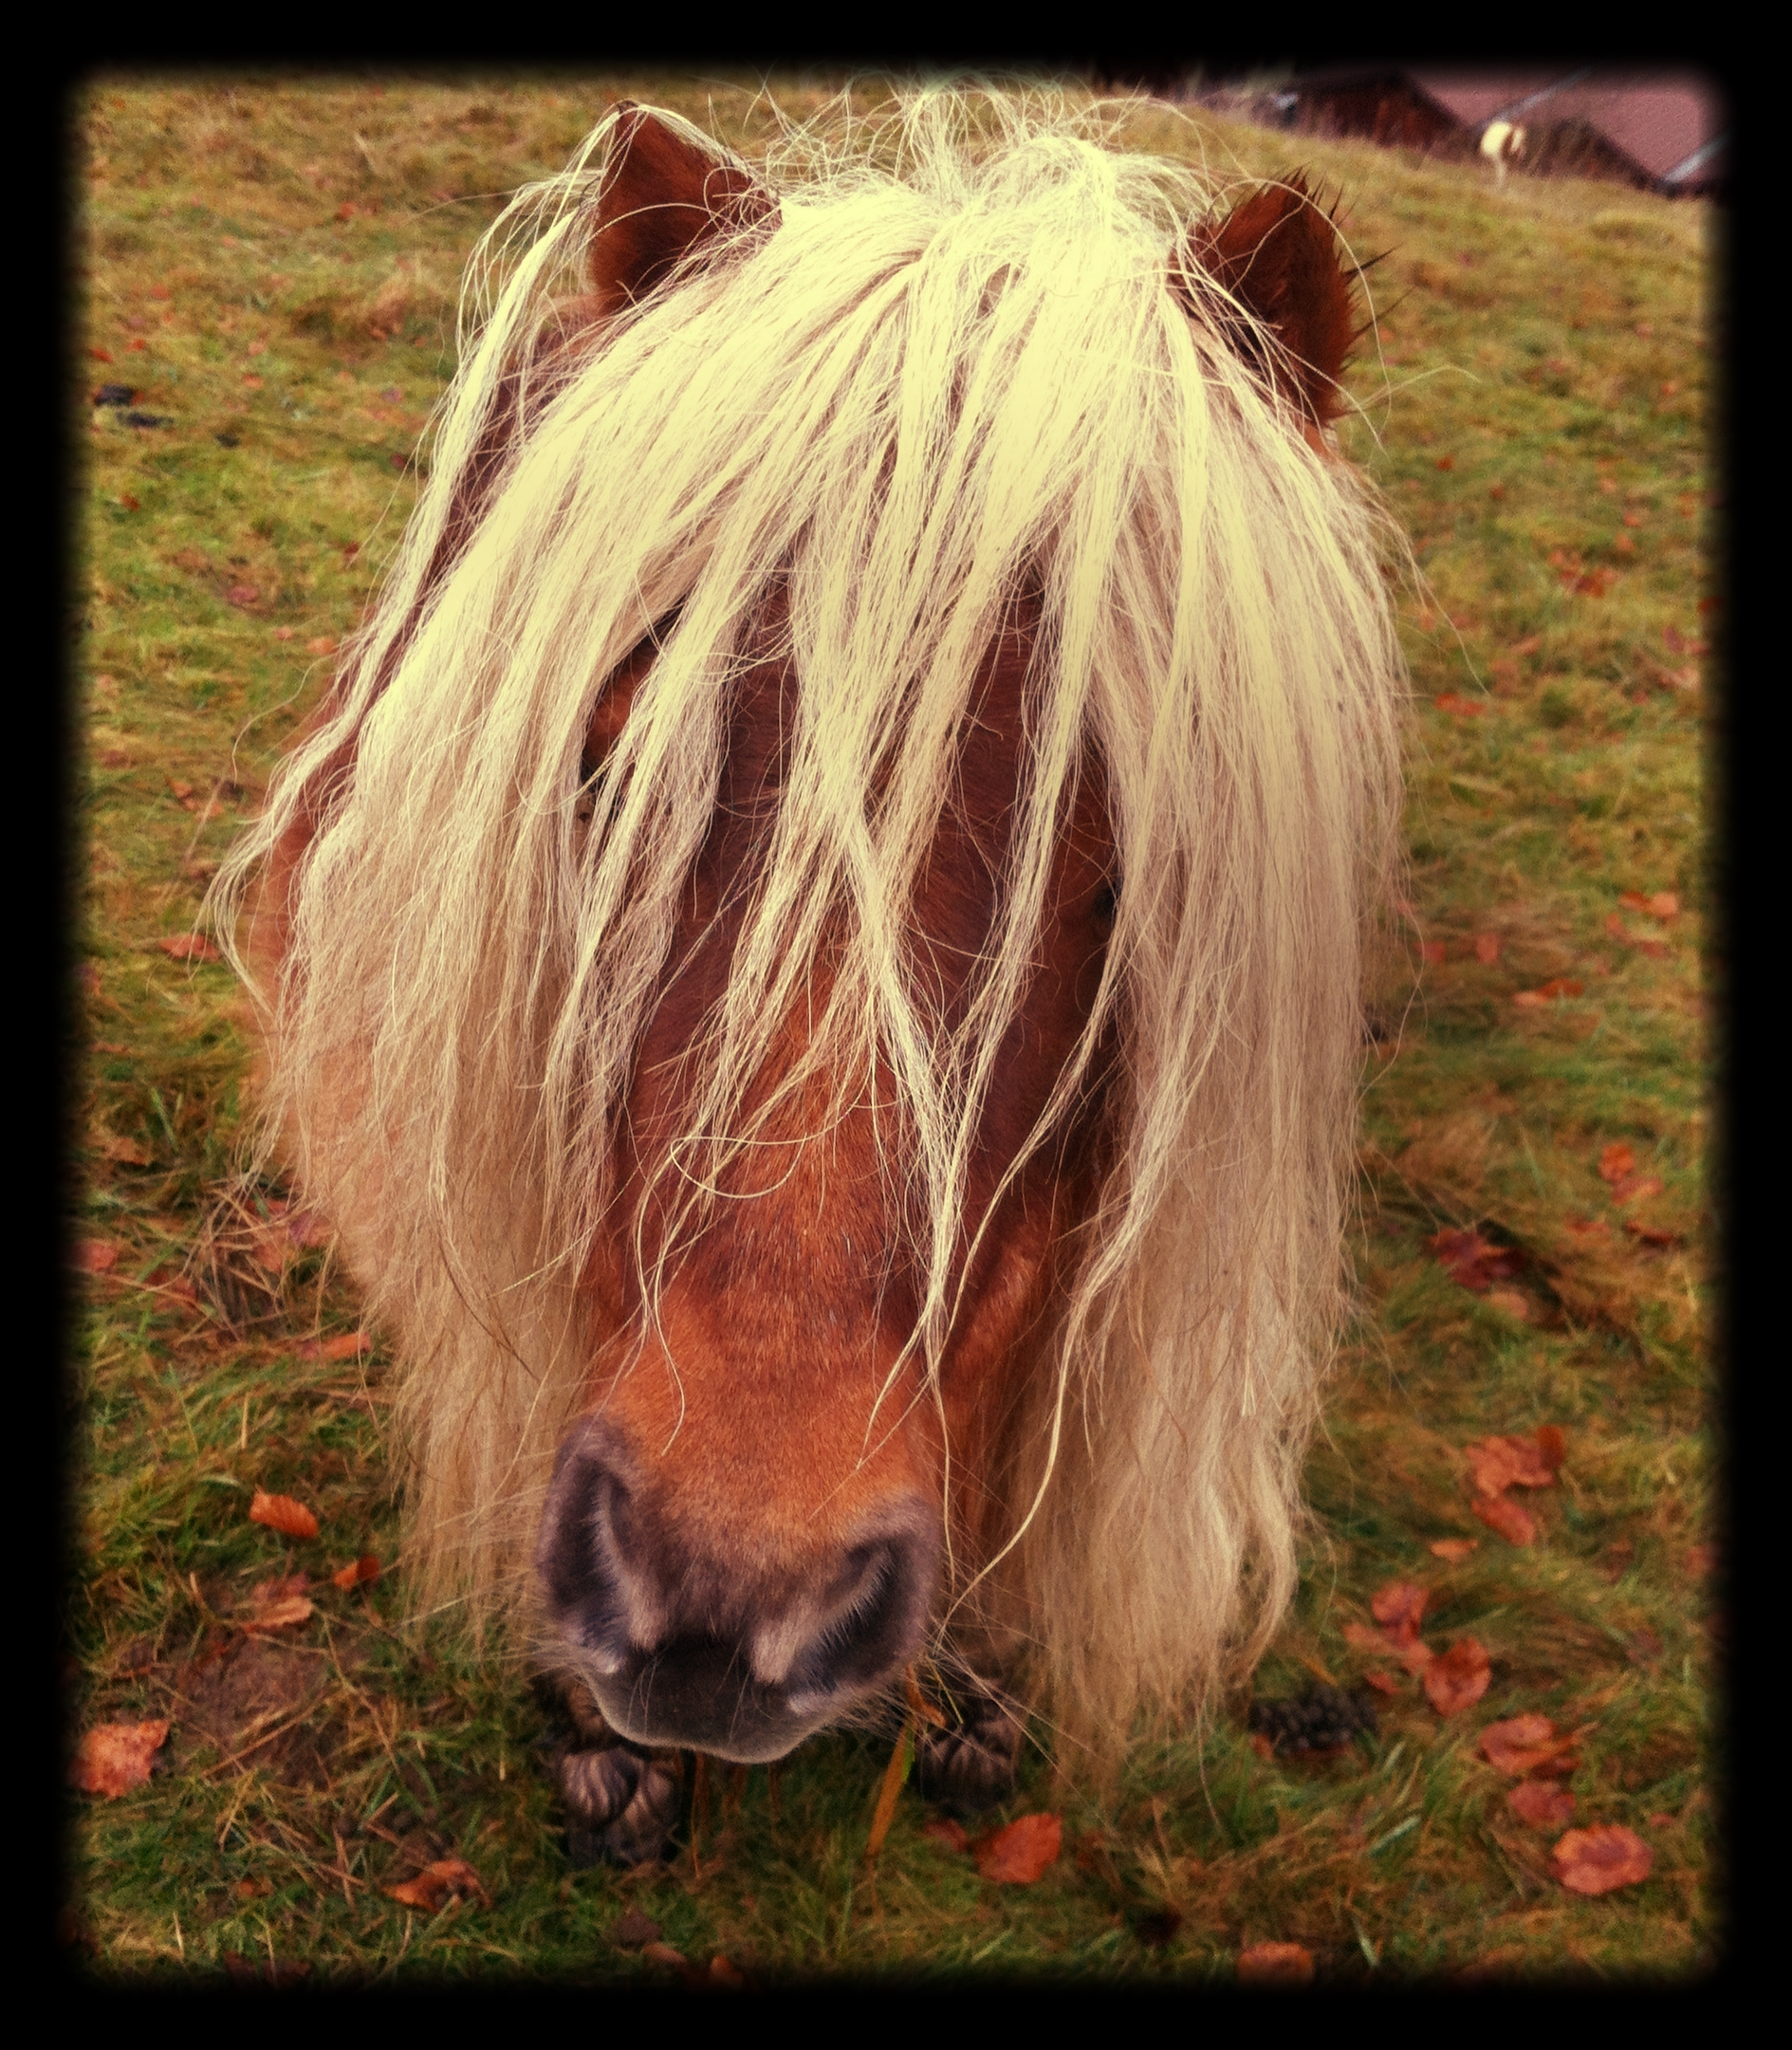 At_least_this_little_pony_can_still_graze